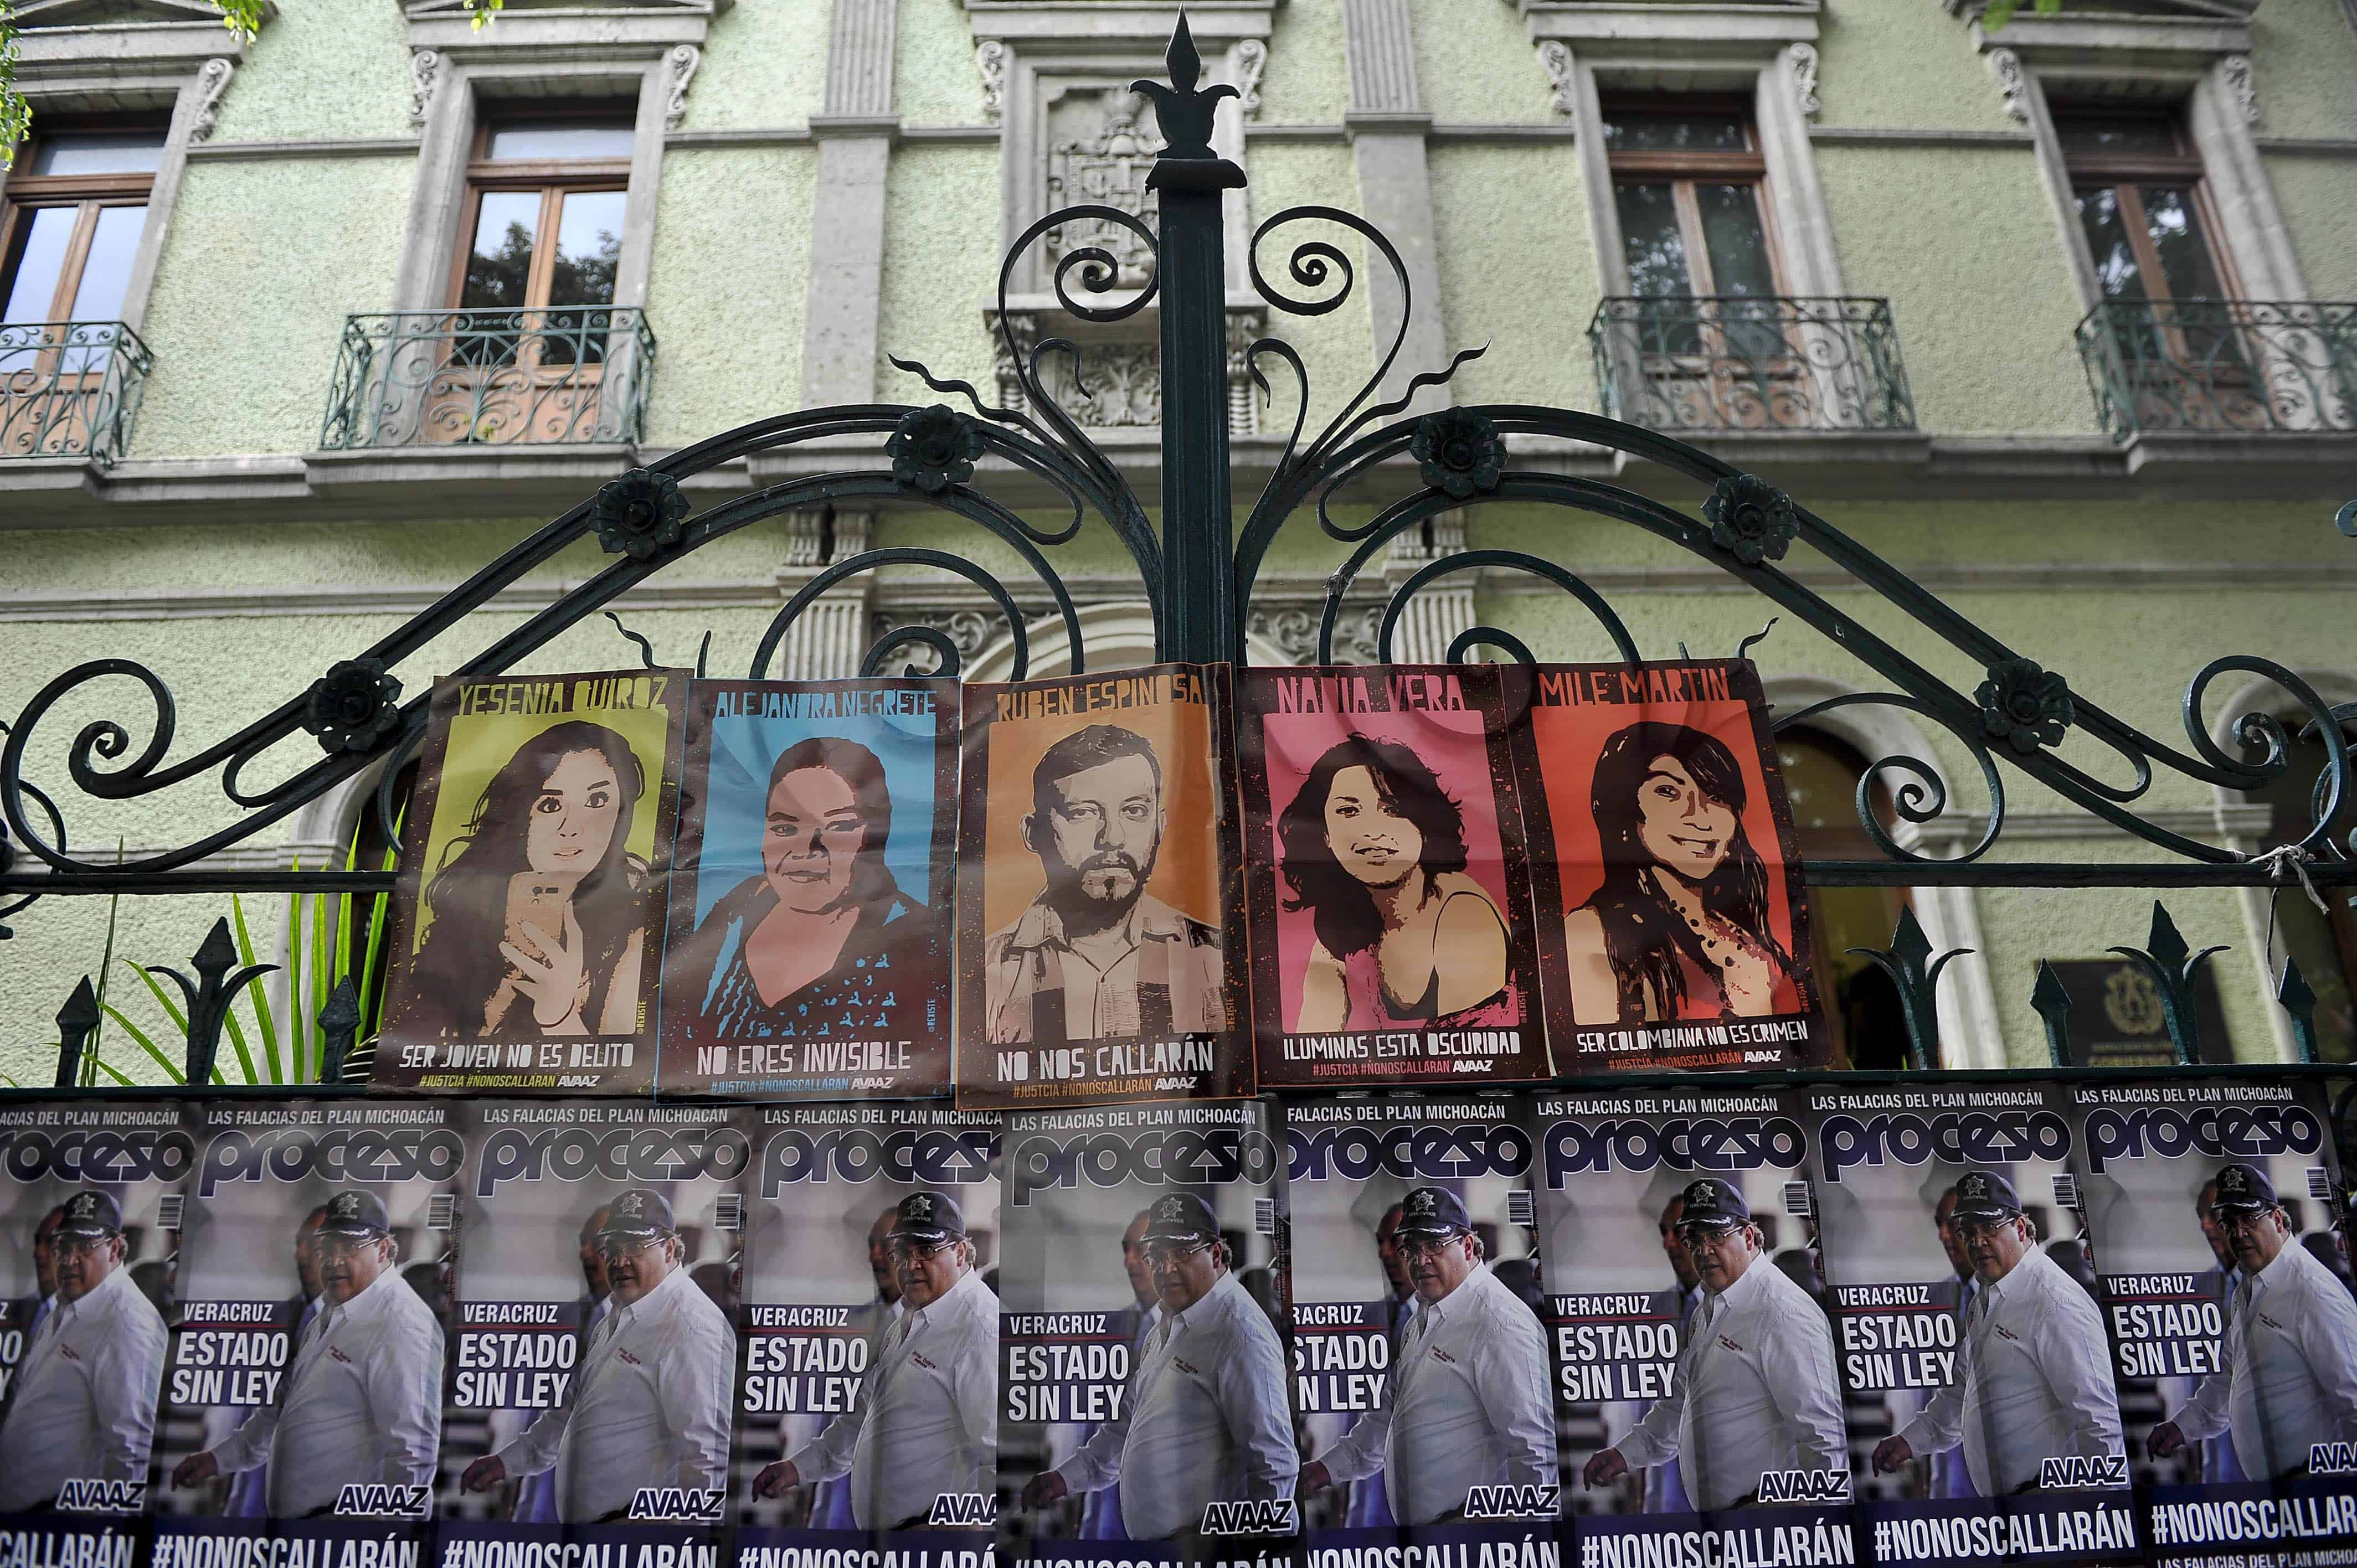 Posters with the image of Veracruz state Governor Javier Duarte (at bottom) and the victims of a horrendous killing hang outside the office of Veracruz state officials in Mexico City on Aug. 31, 2015.